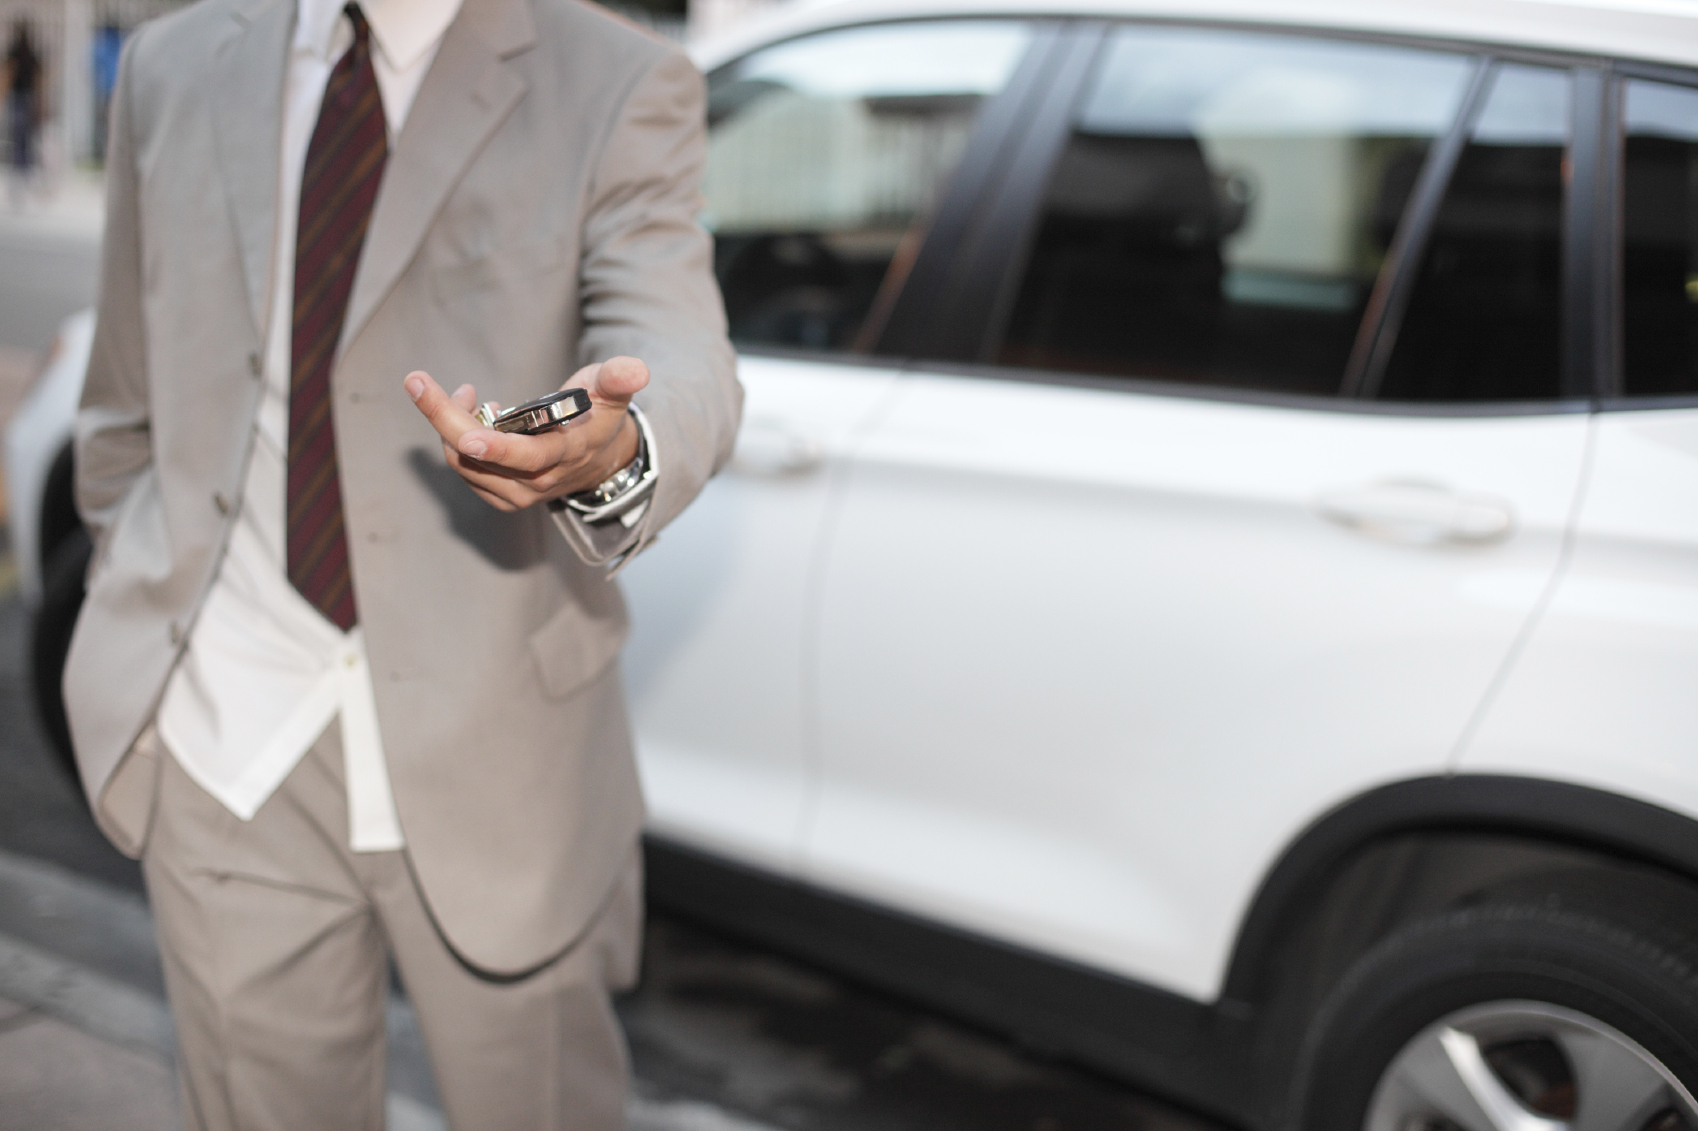 Part 2 – Don't Get Taken When Buying a Car: Negotiation Tips From an Insider